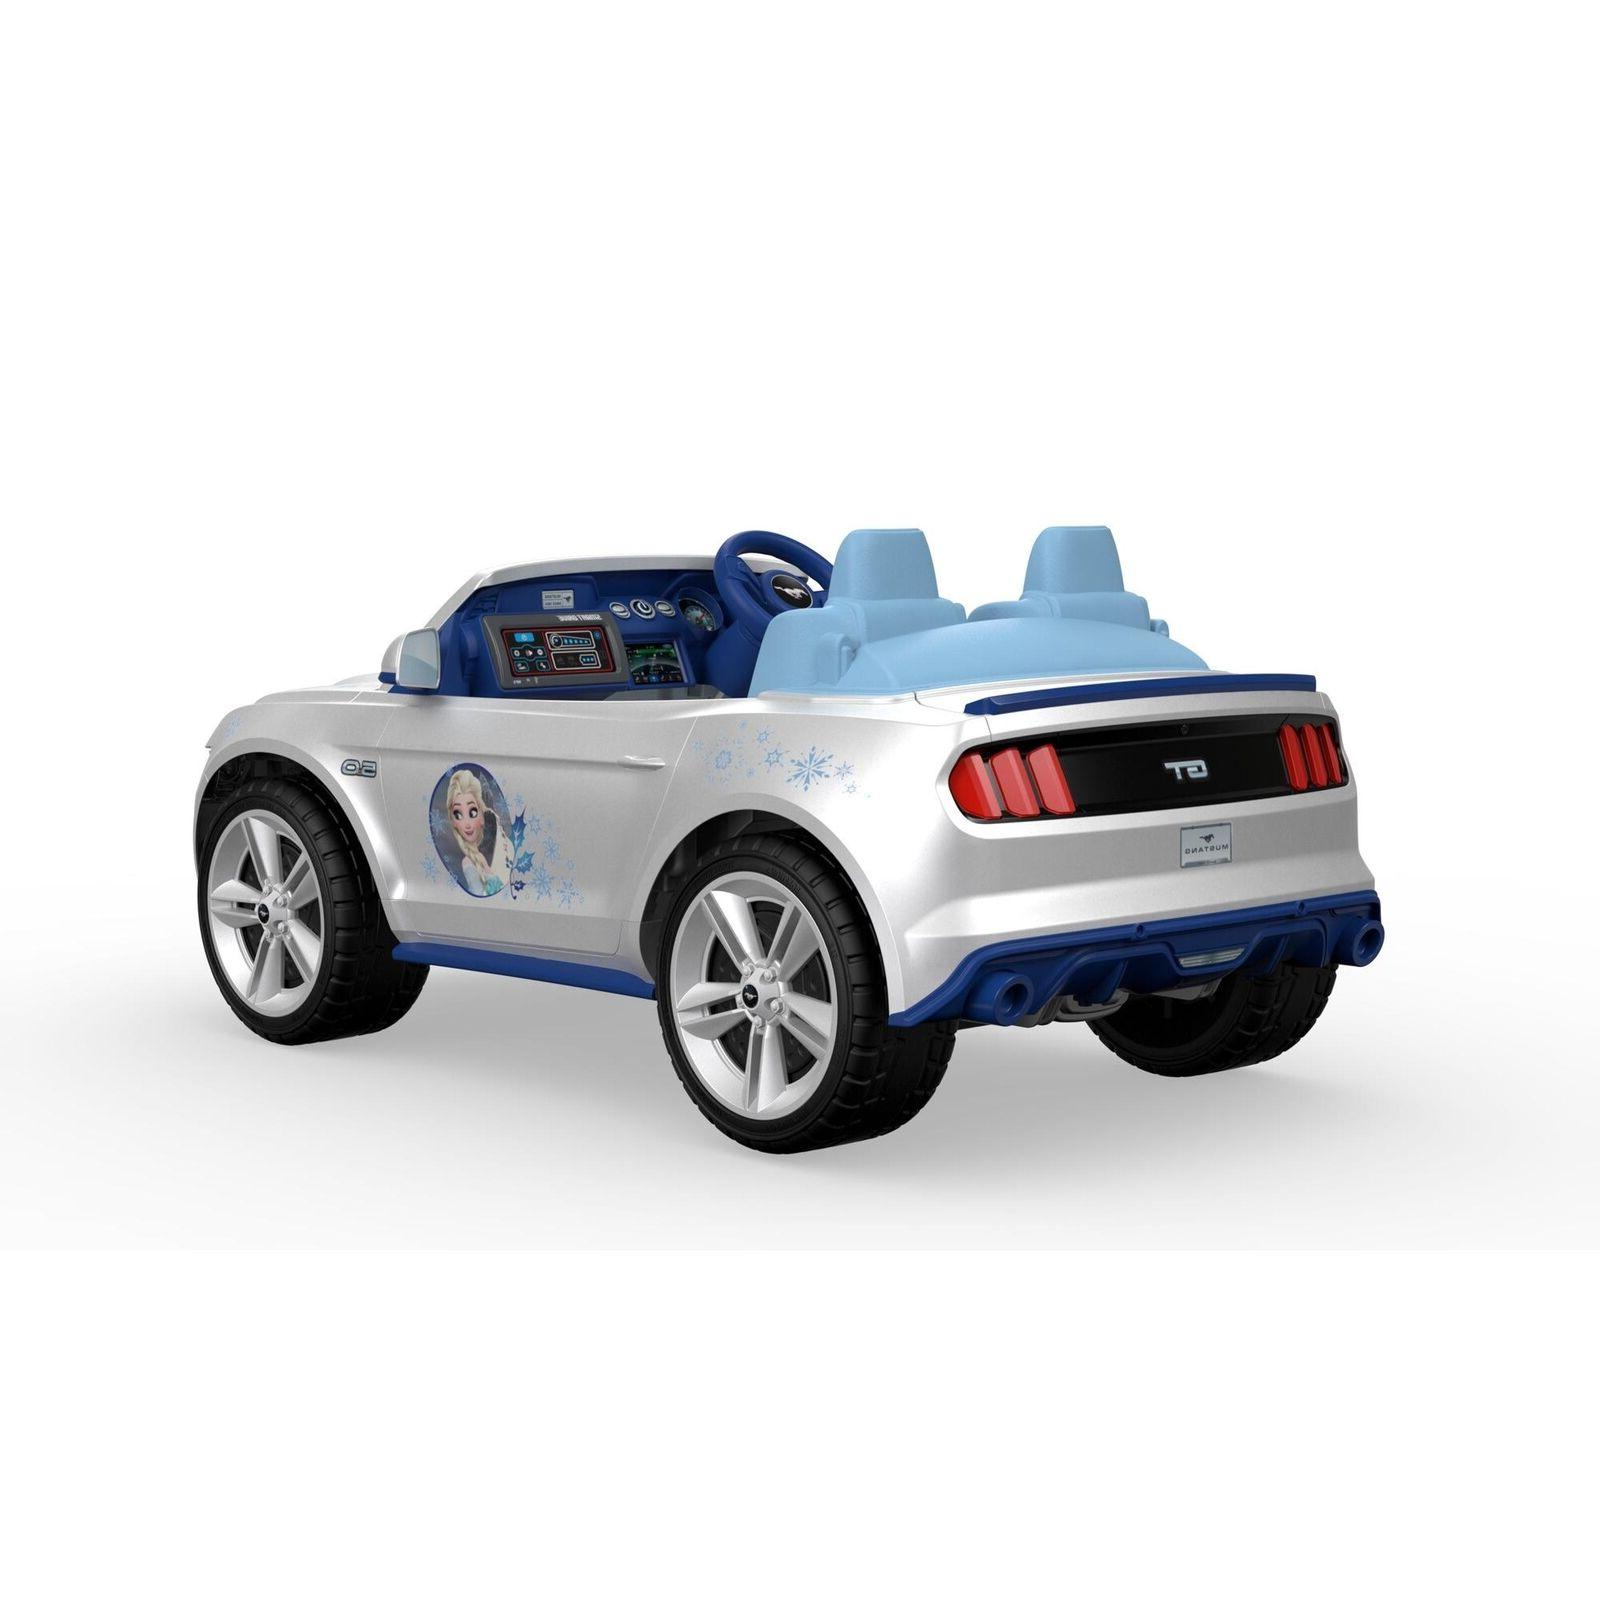 Electric To Ride Frozen Ford Mustang Vehicle